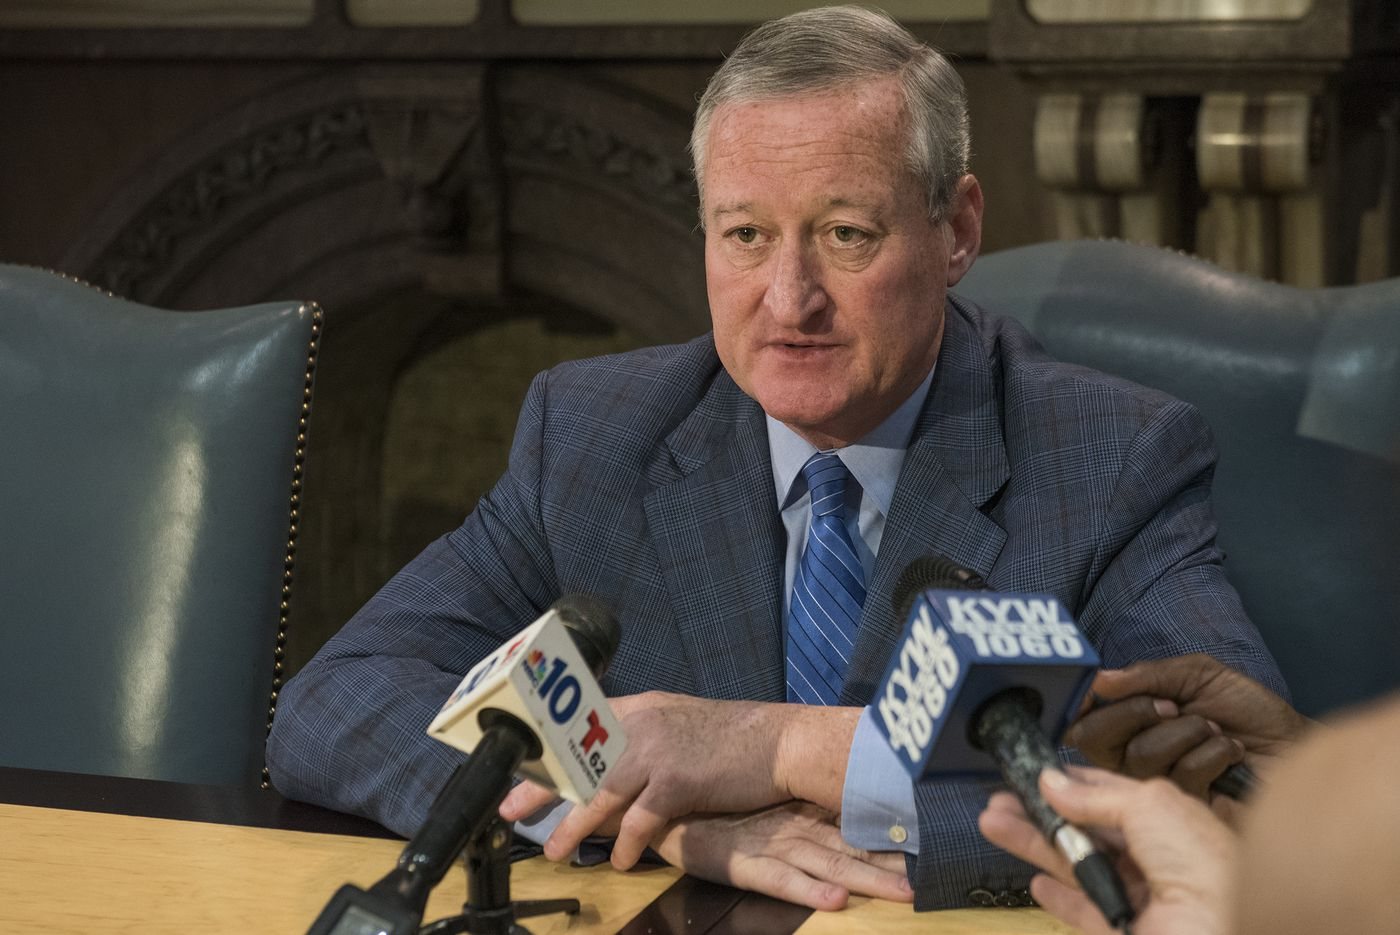 Mayor Kenney becoming a national embarrassment | Dom Giordano